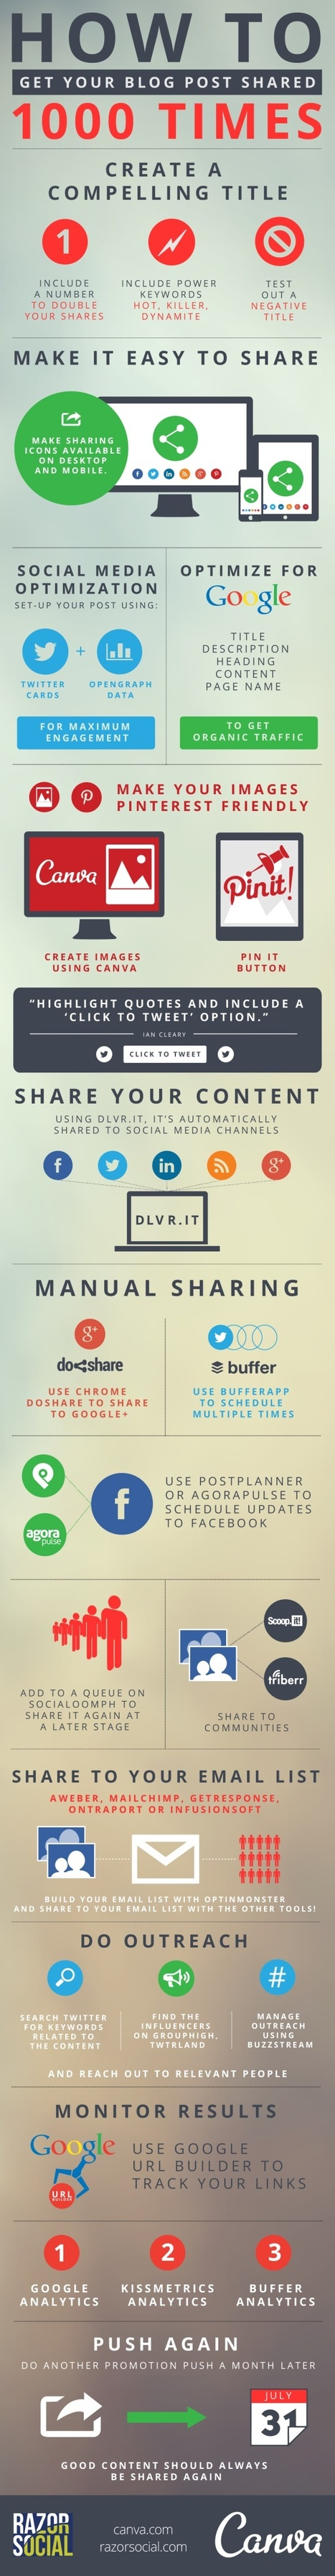 How To Get Your Blog Post Shared 1,000 Times [INFOGRAPHIC] | Panorama digital | Scoop.it